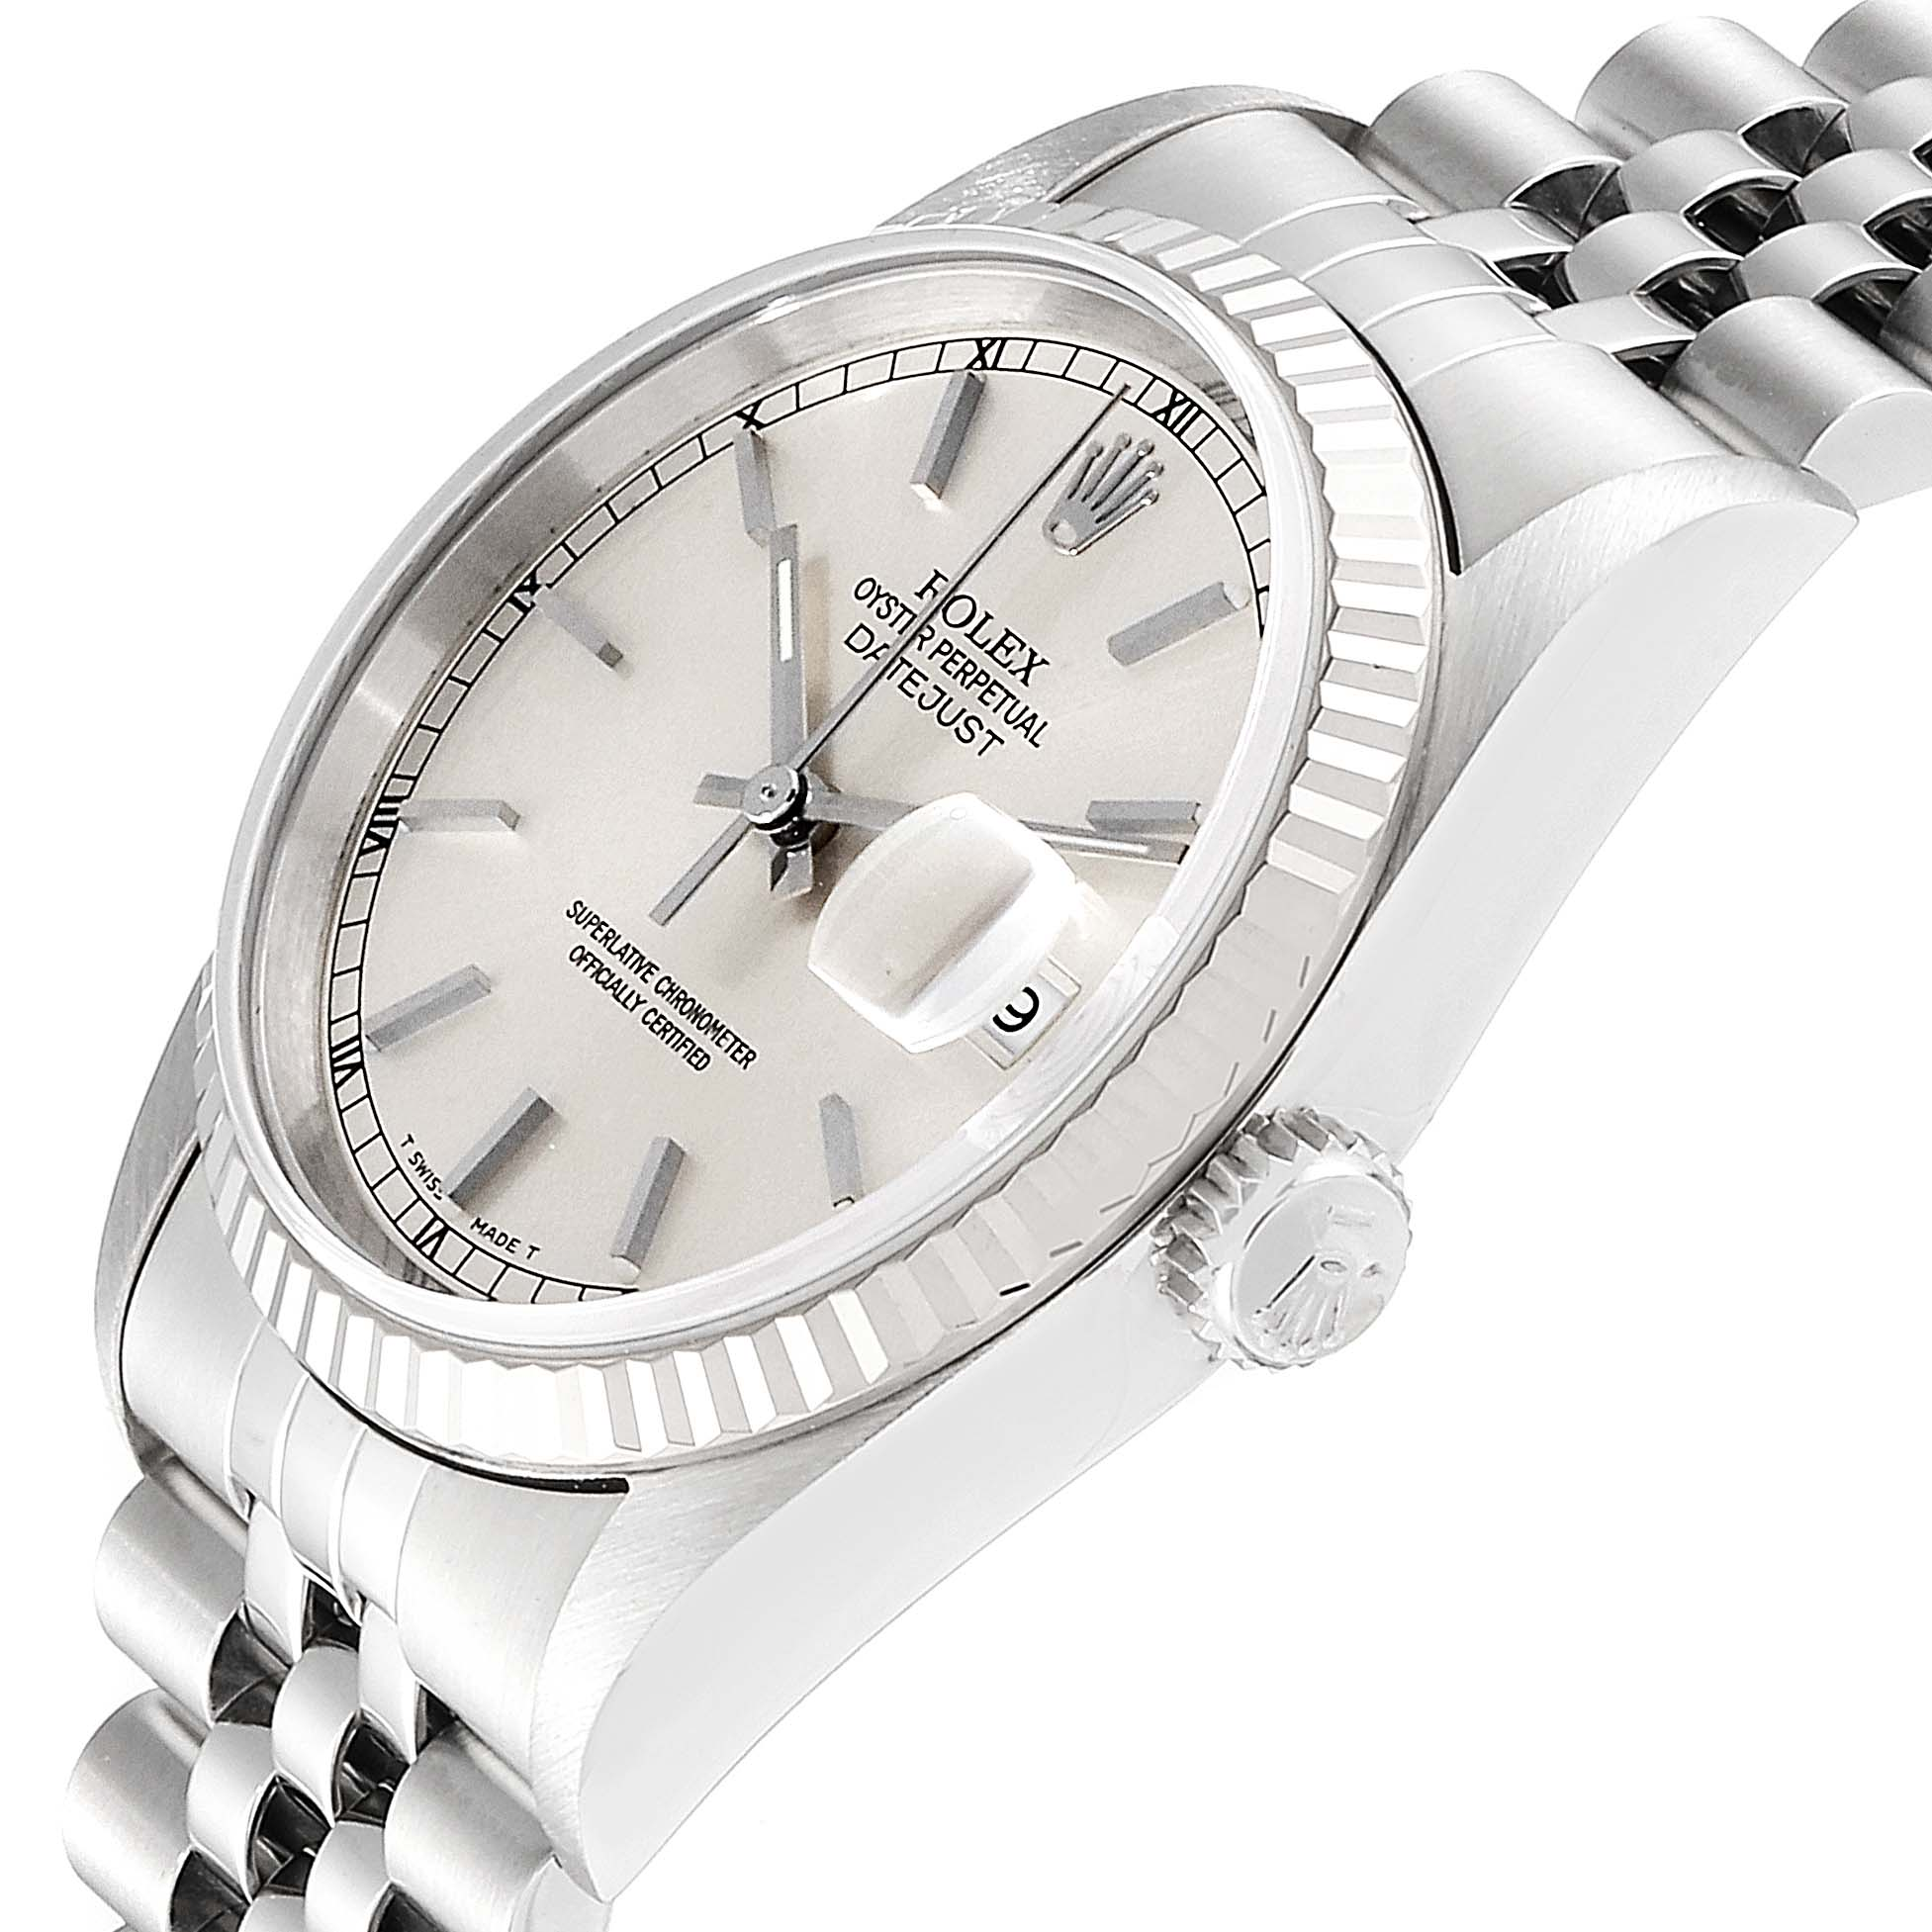 Rolex Datejust Steel White Gold Silver Baton Dial Mens Watch 16234 SwissWatchExpo